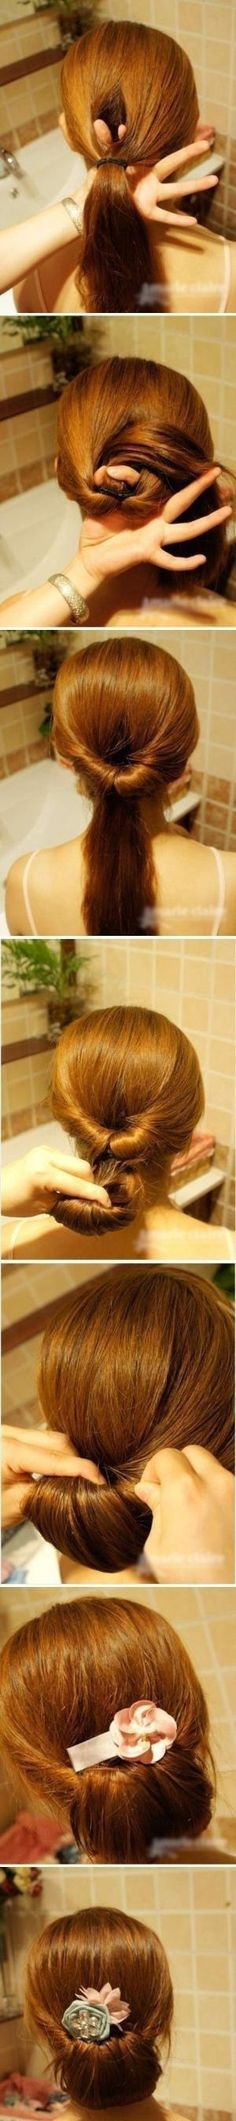 Cool DIY hairstyles for girls by Chelsea Brinker